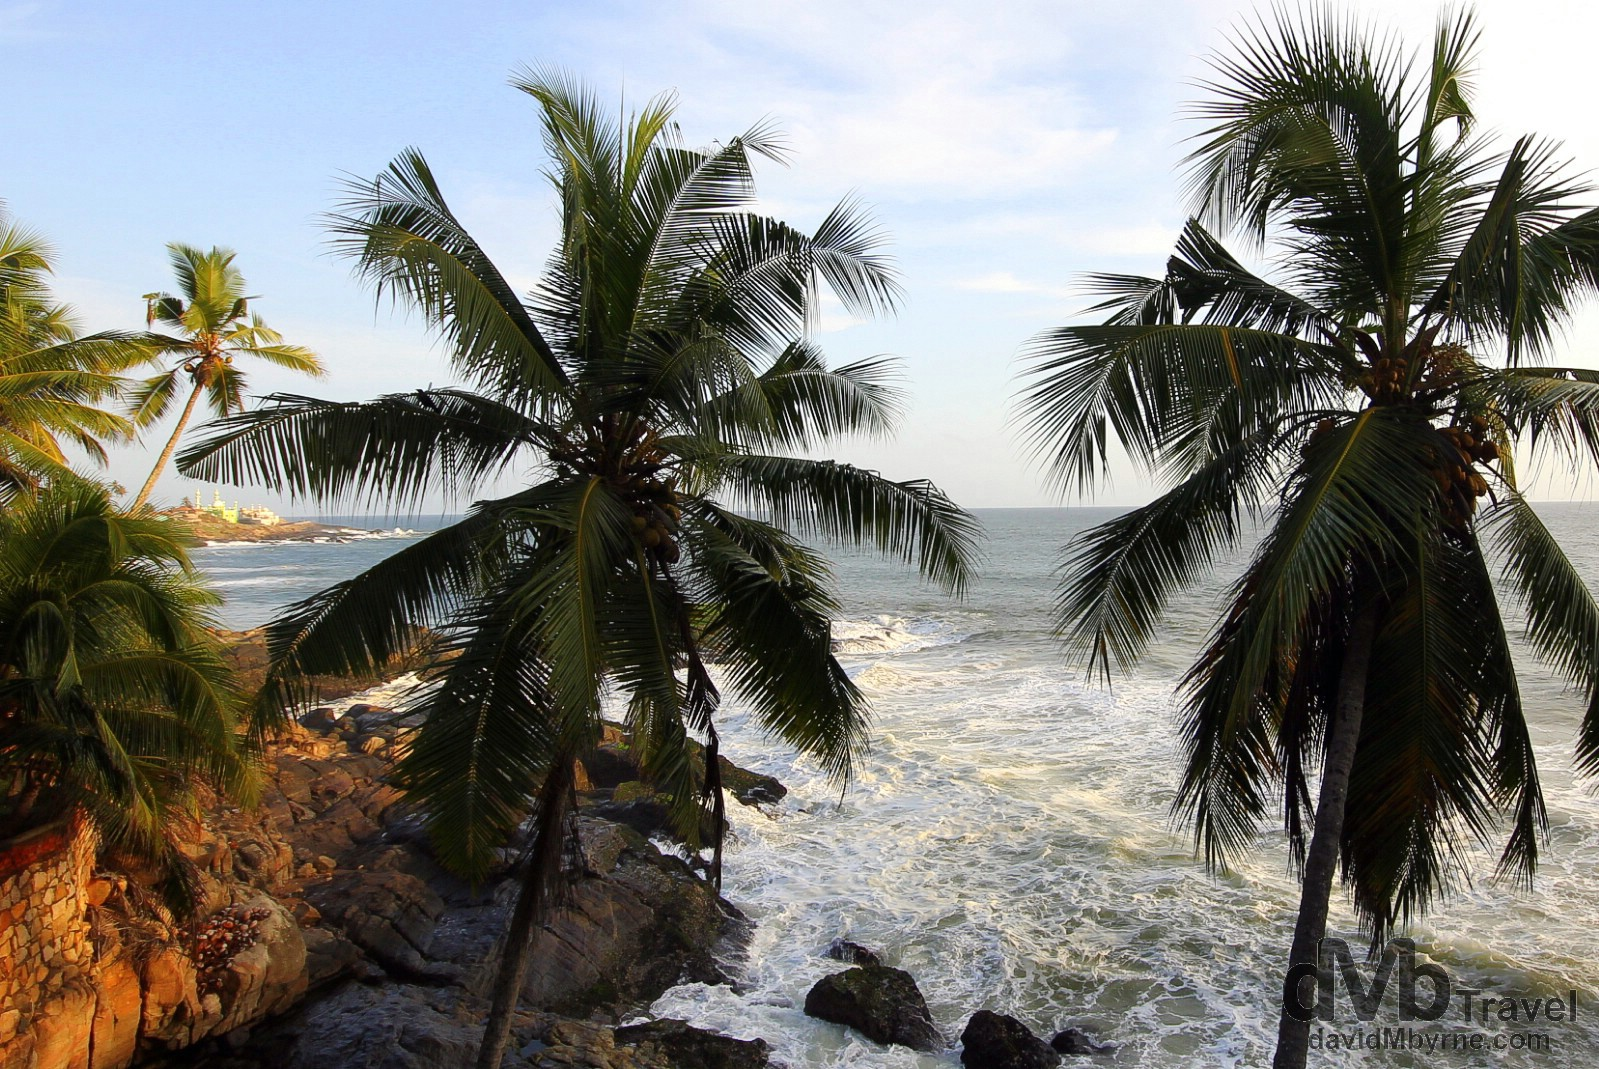 Room with a view. Kovalam, Kerala, southwestern India. September 11th 2012.